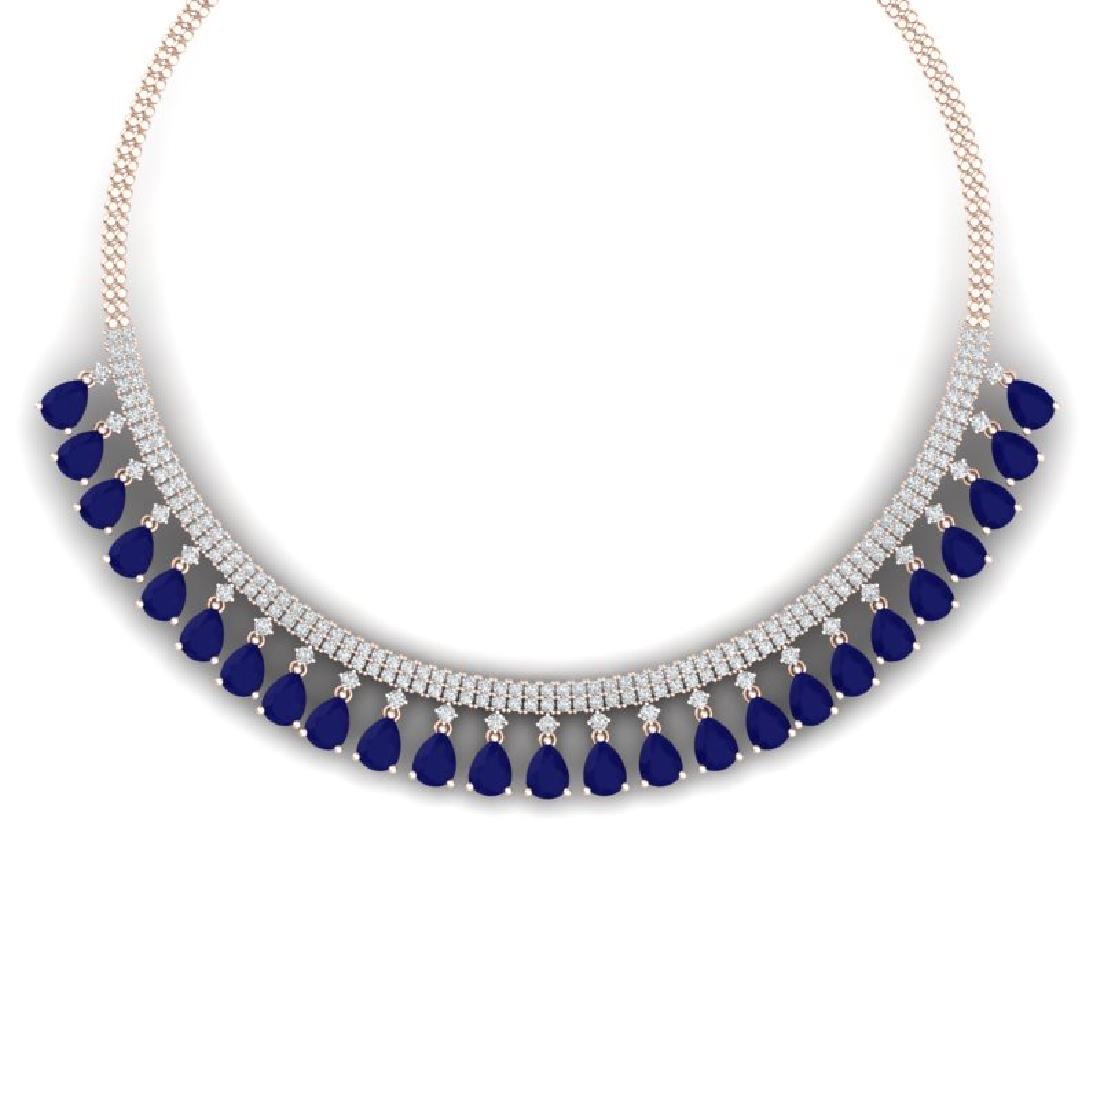 51.75 CTW Royalty Sapphire & VS Diamond Necklace 18K